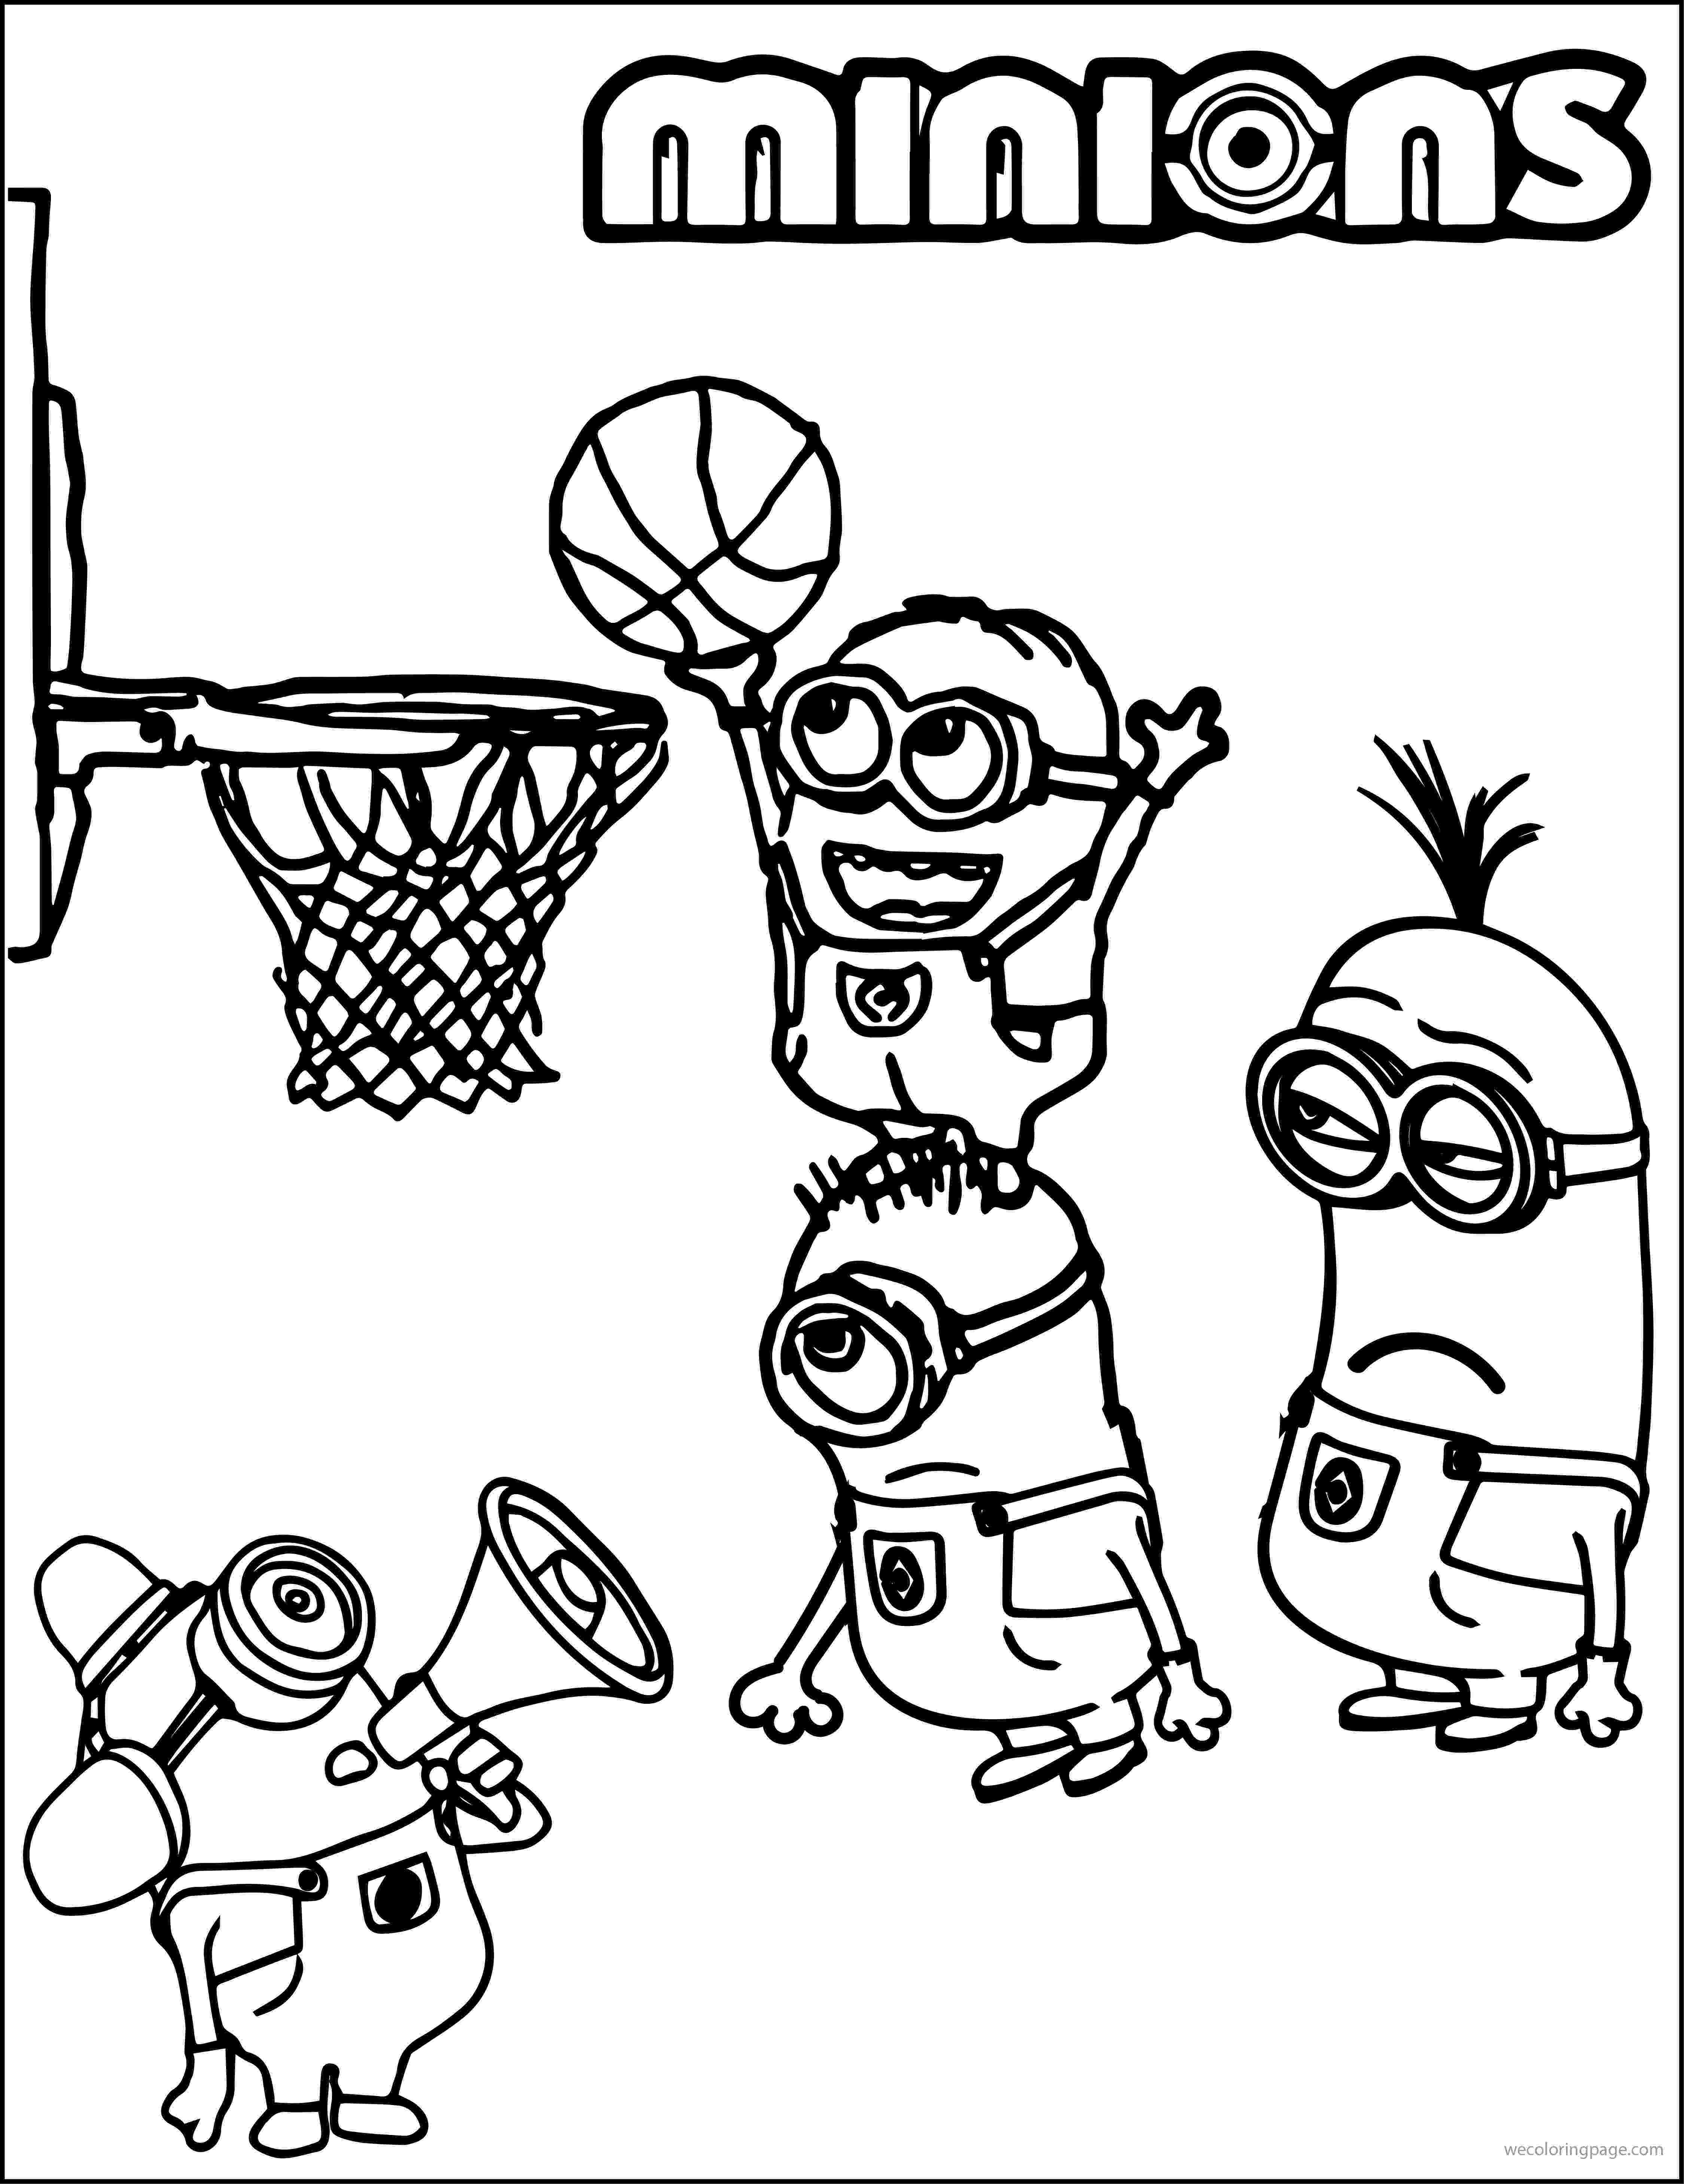 kids sports coloring pages football colouring pages 30 to print and color for free kids coloring sports pages